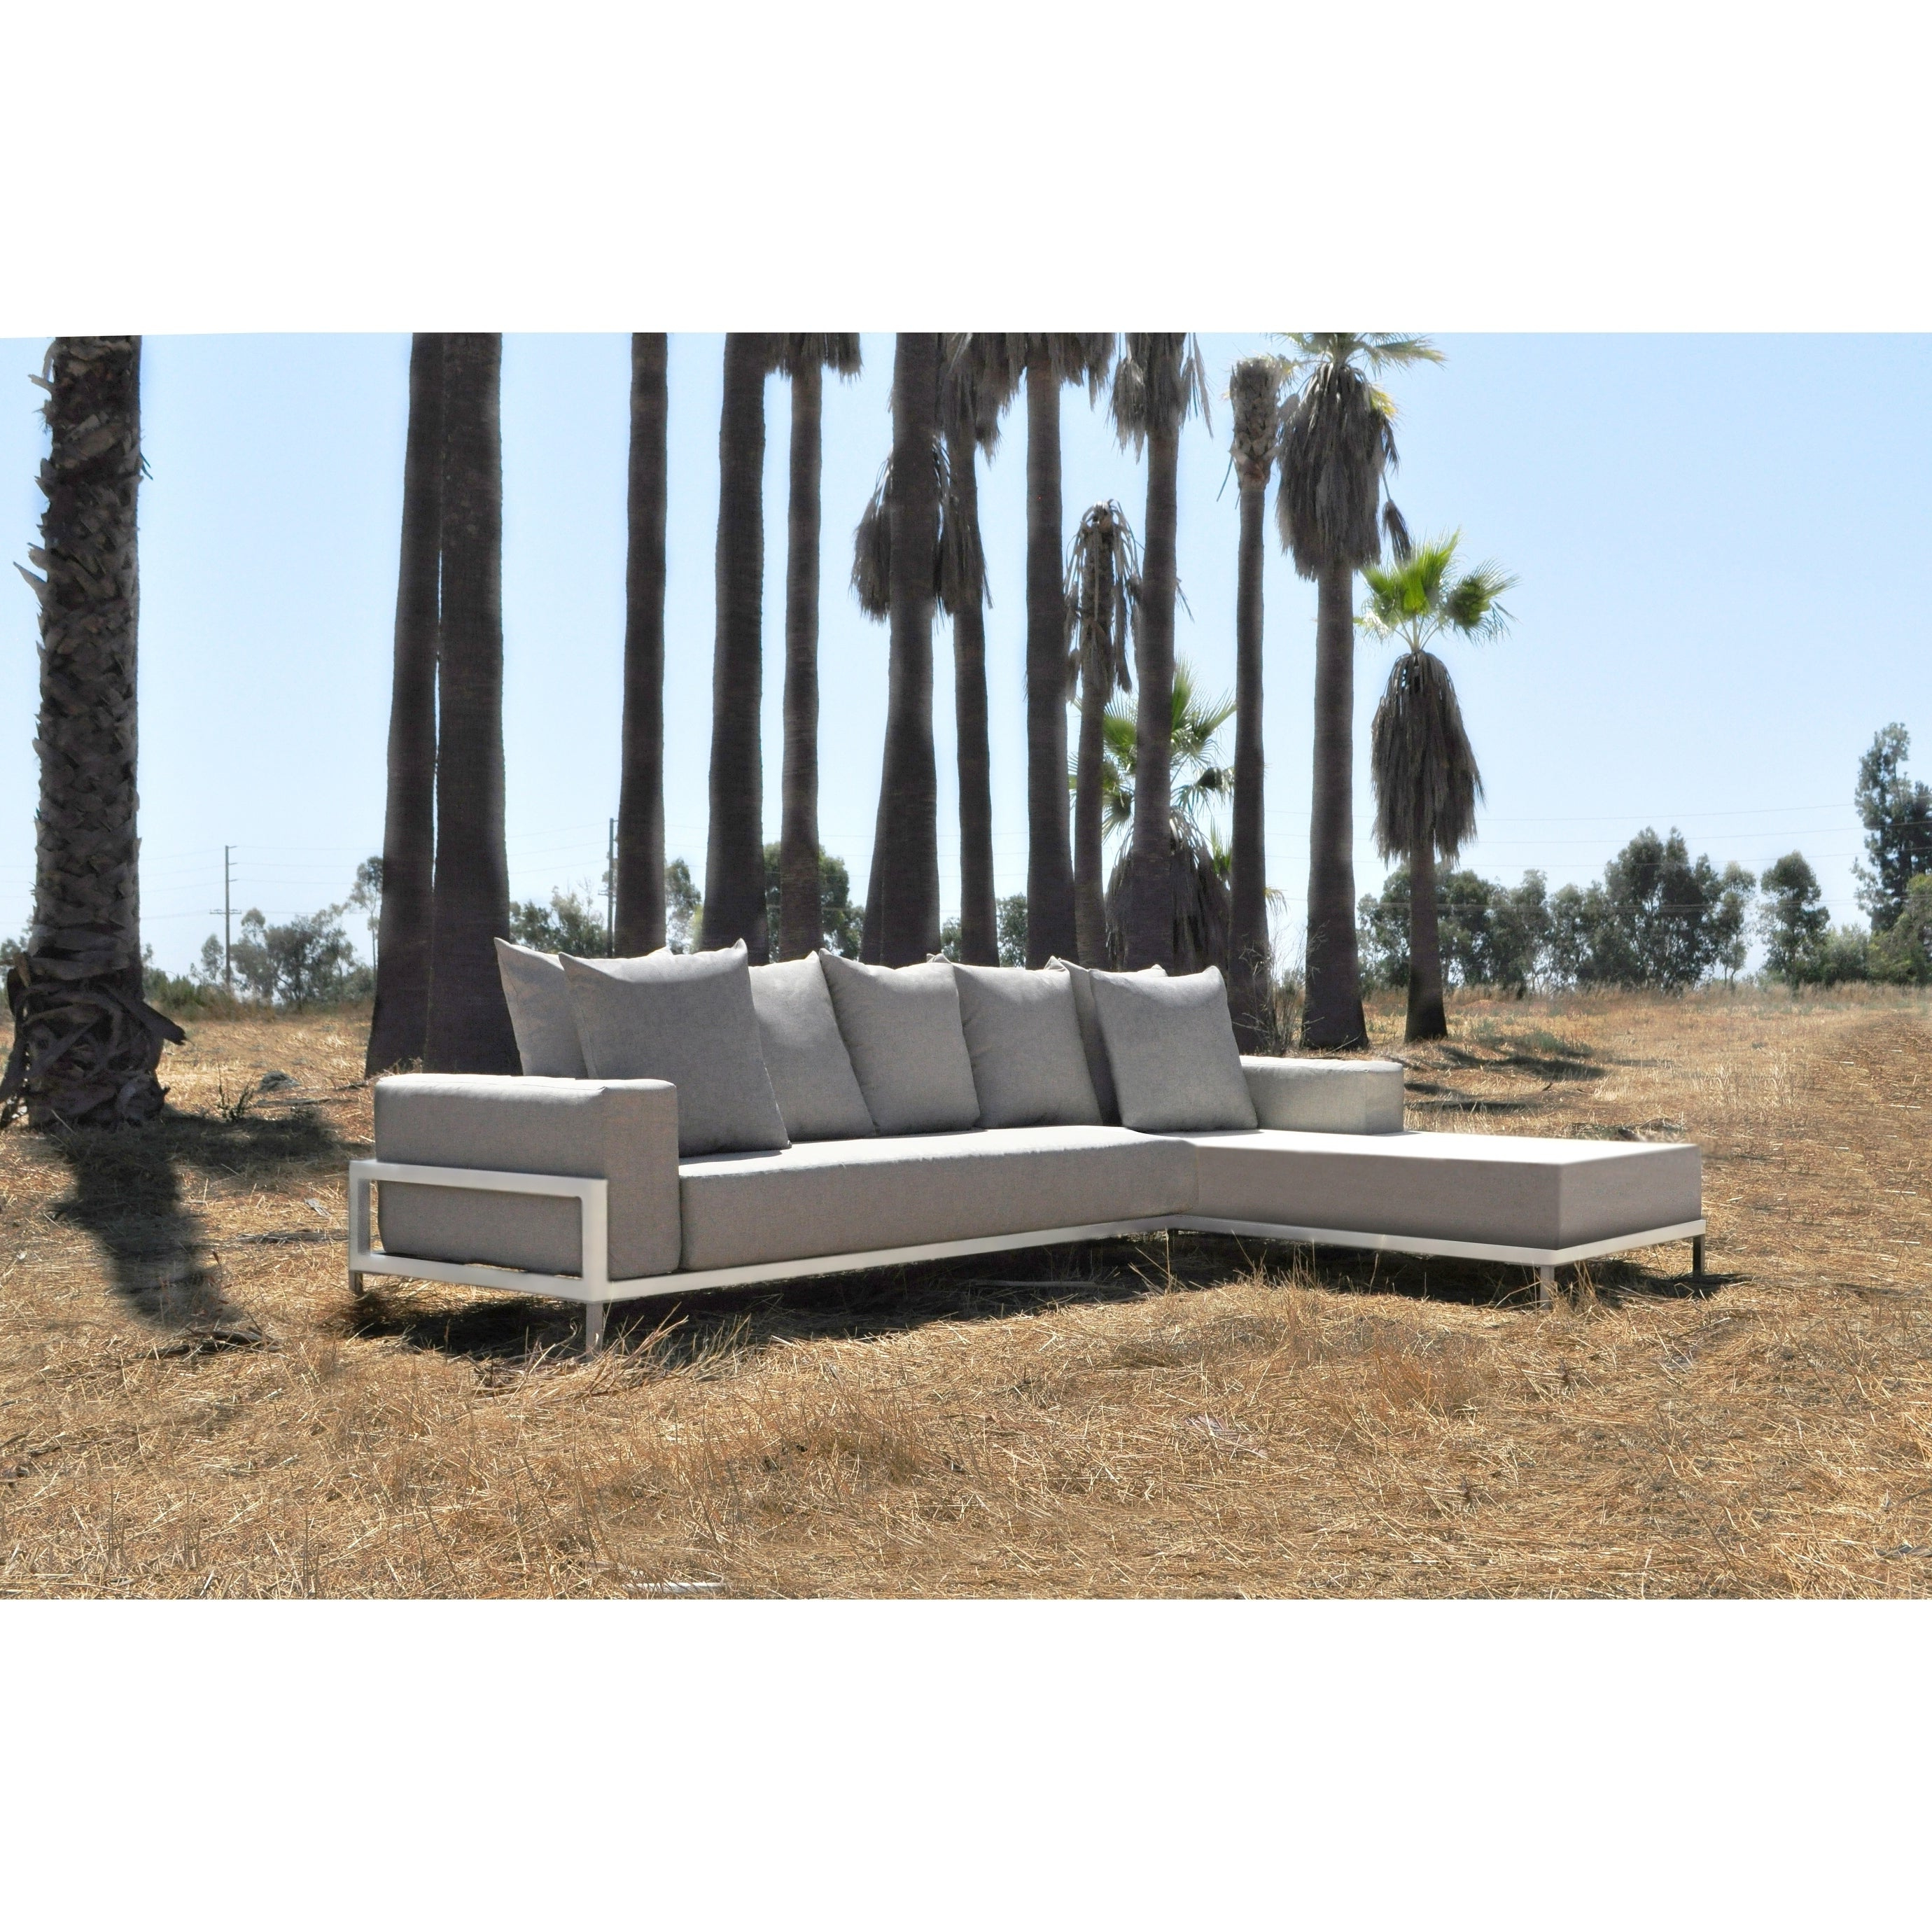 Most Popular Paloma Sectionals With Cushions With Regard To Solis Nubis Sectional Outdoor Deep Seated 2 Piece Patio Set – Textured  White Frame, Pebble Cream Cushions (View 9 of 20)